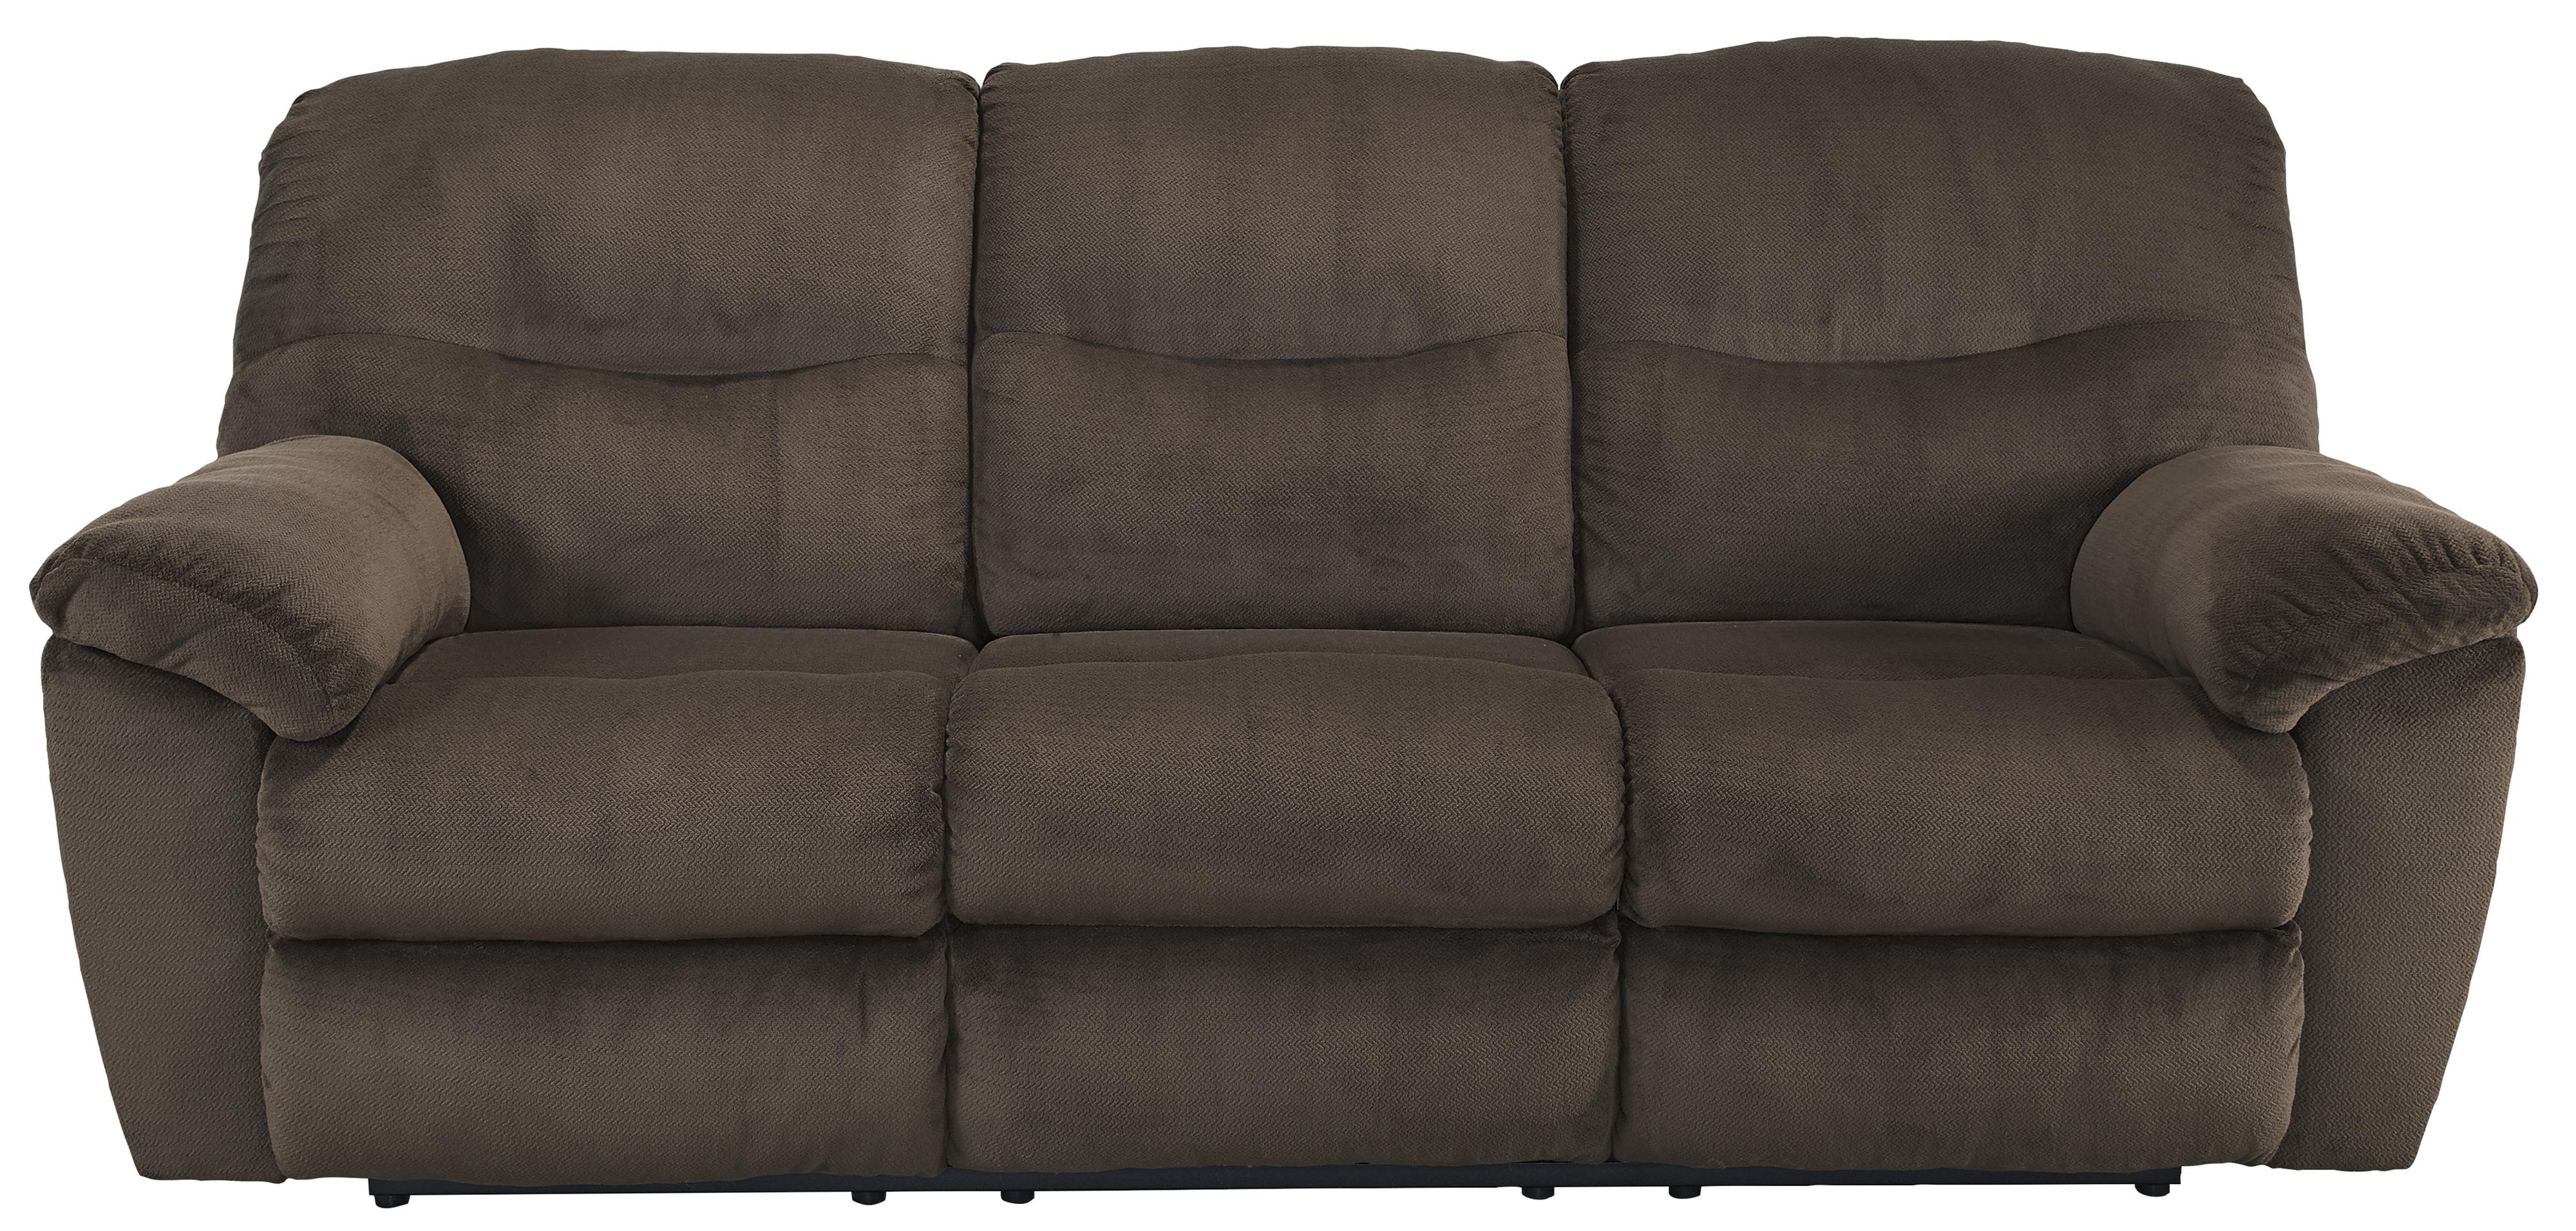 Signature Design by Ashley Slidell Reclining Sofa - Item Number: 8270288